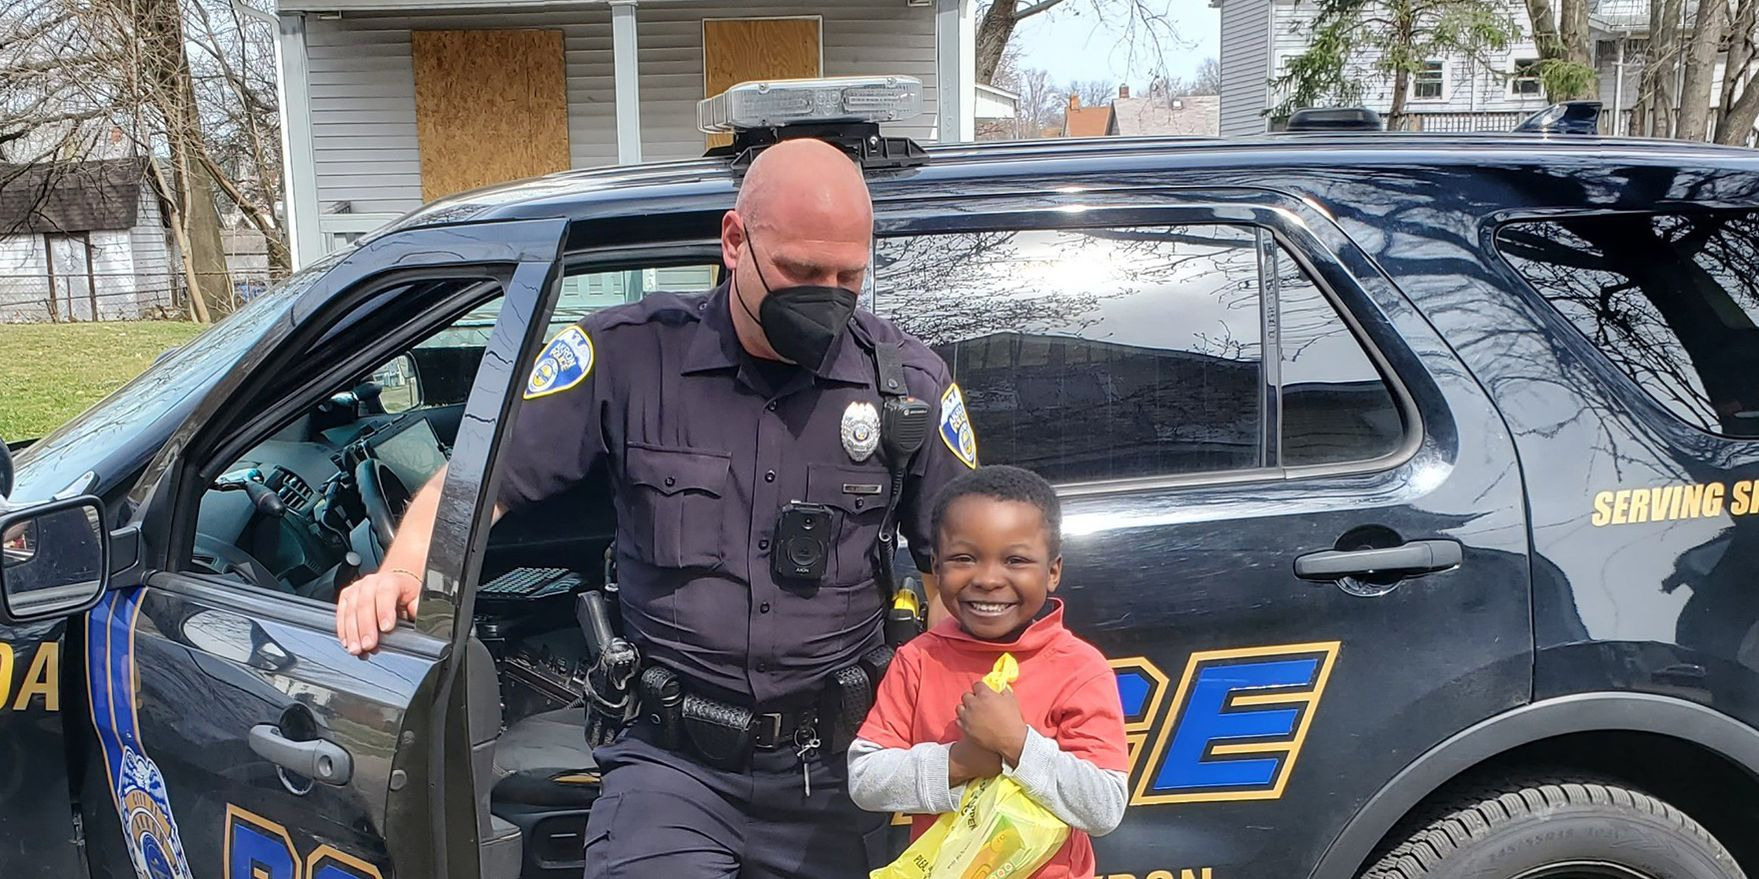 Akron 5-year-old helps mom with yard work, gets surprise from police officer